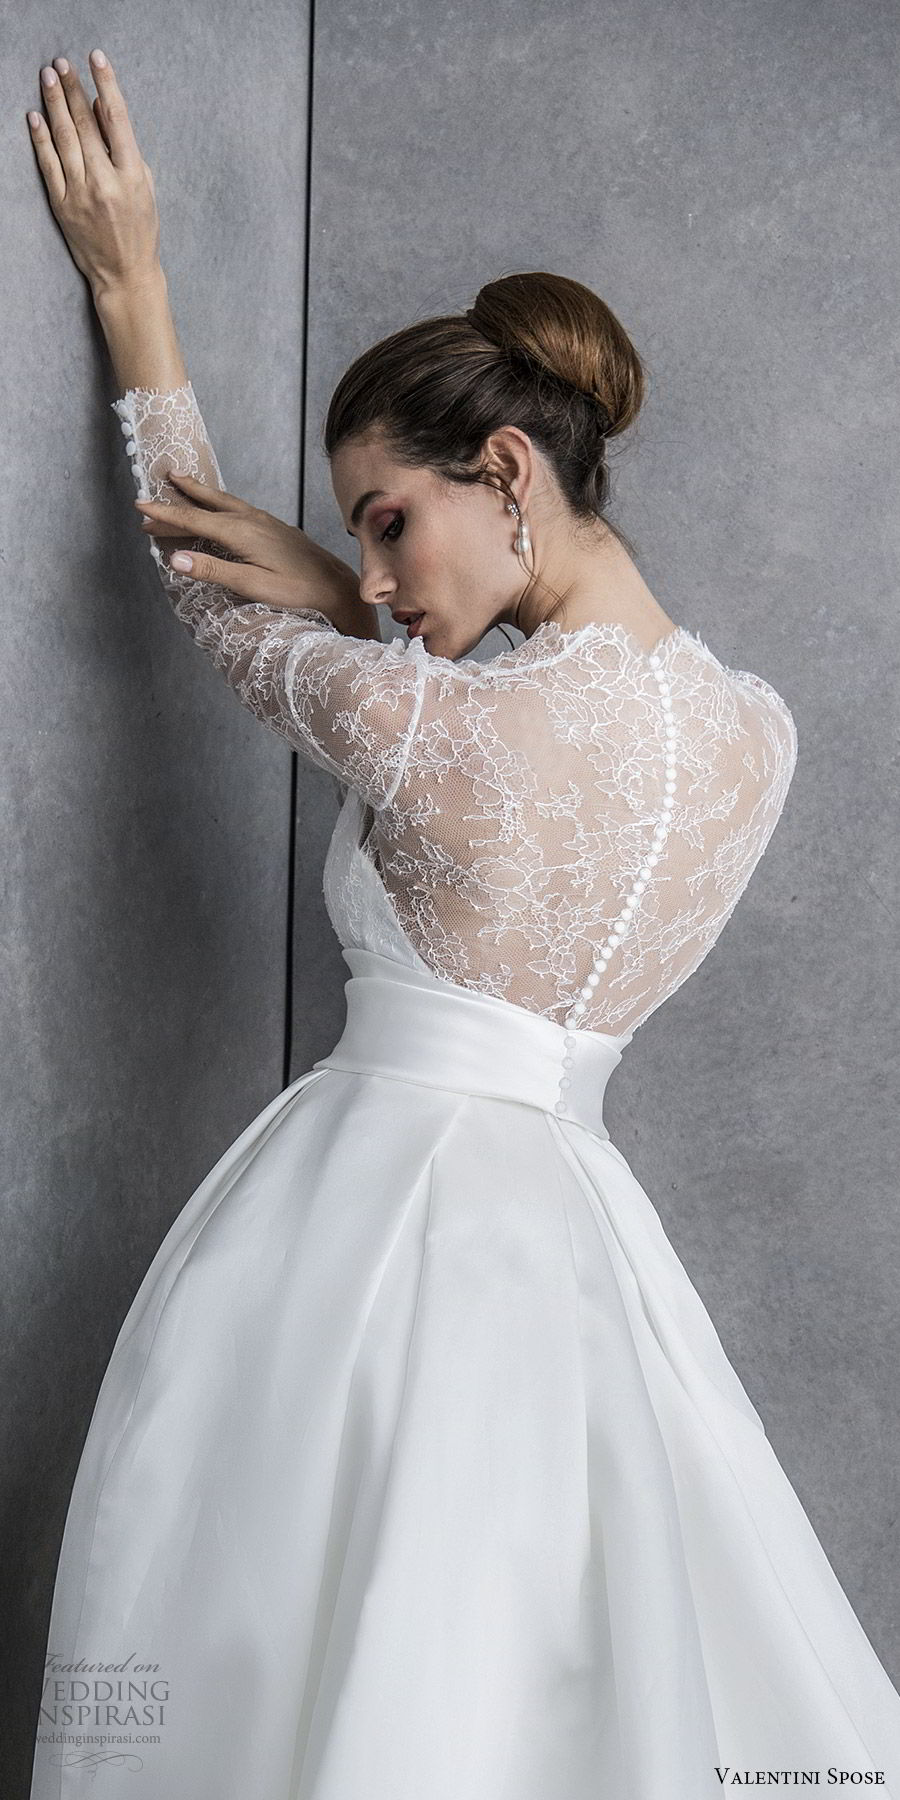 valentini spose spring 2020 bridal illusion long sleeves sweetheart neckline lace bodice a line ball gown wedding dress (18) elegant princess romantic bv